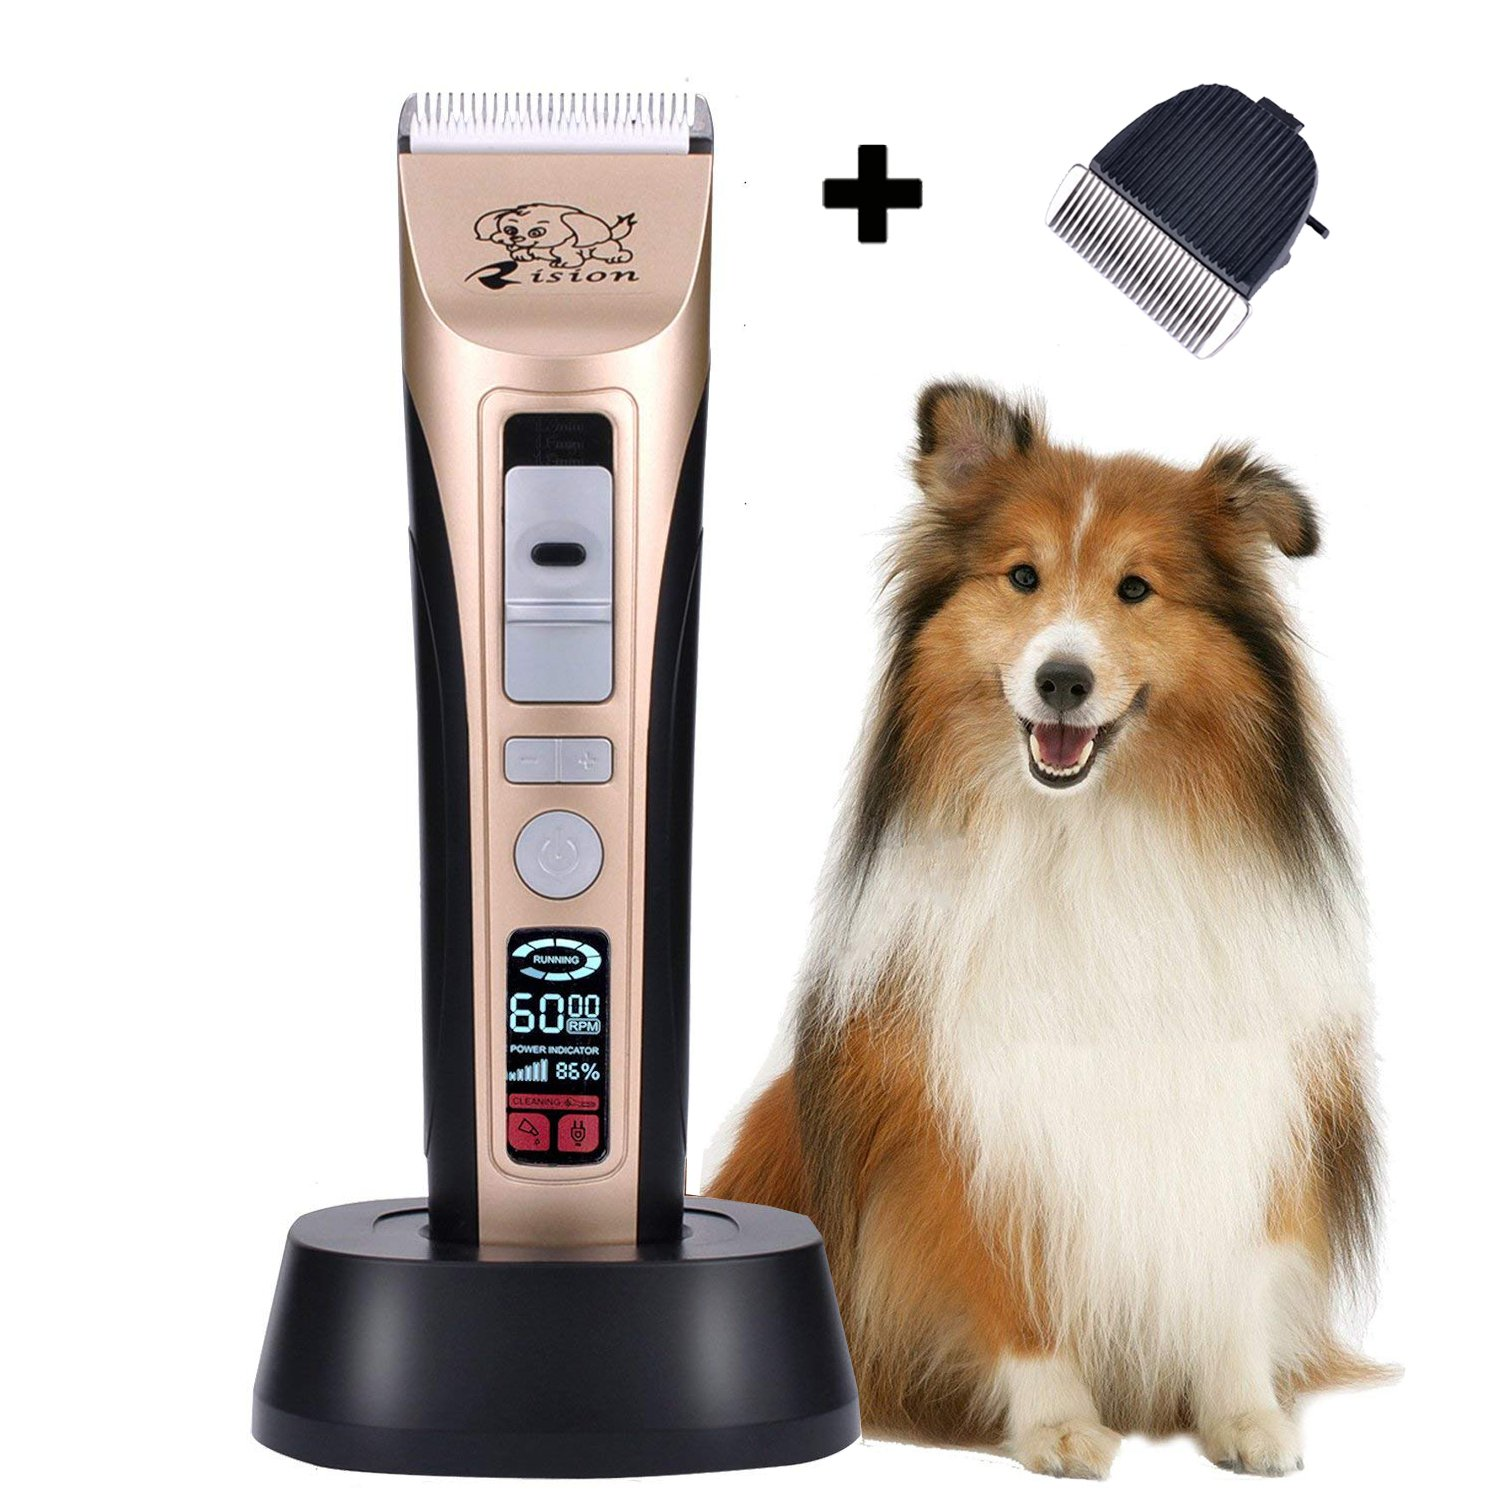 Rision Pet Grooming Clippers, 5 Speed(MAX 7,000RPM) Professional Dog Trimmer, Low Noise Rechargeable Cordless Pet Shaver for Dogs Cats and Other Animals